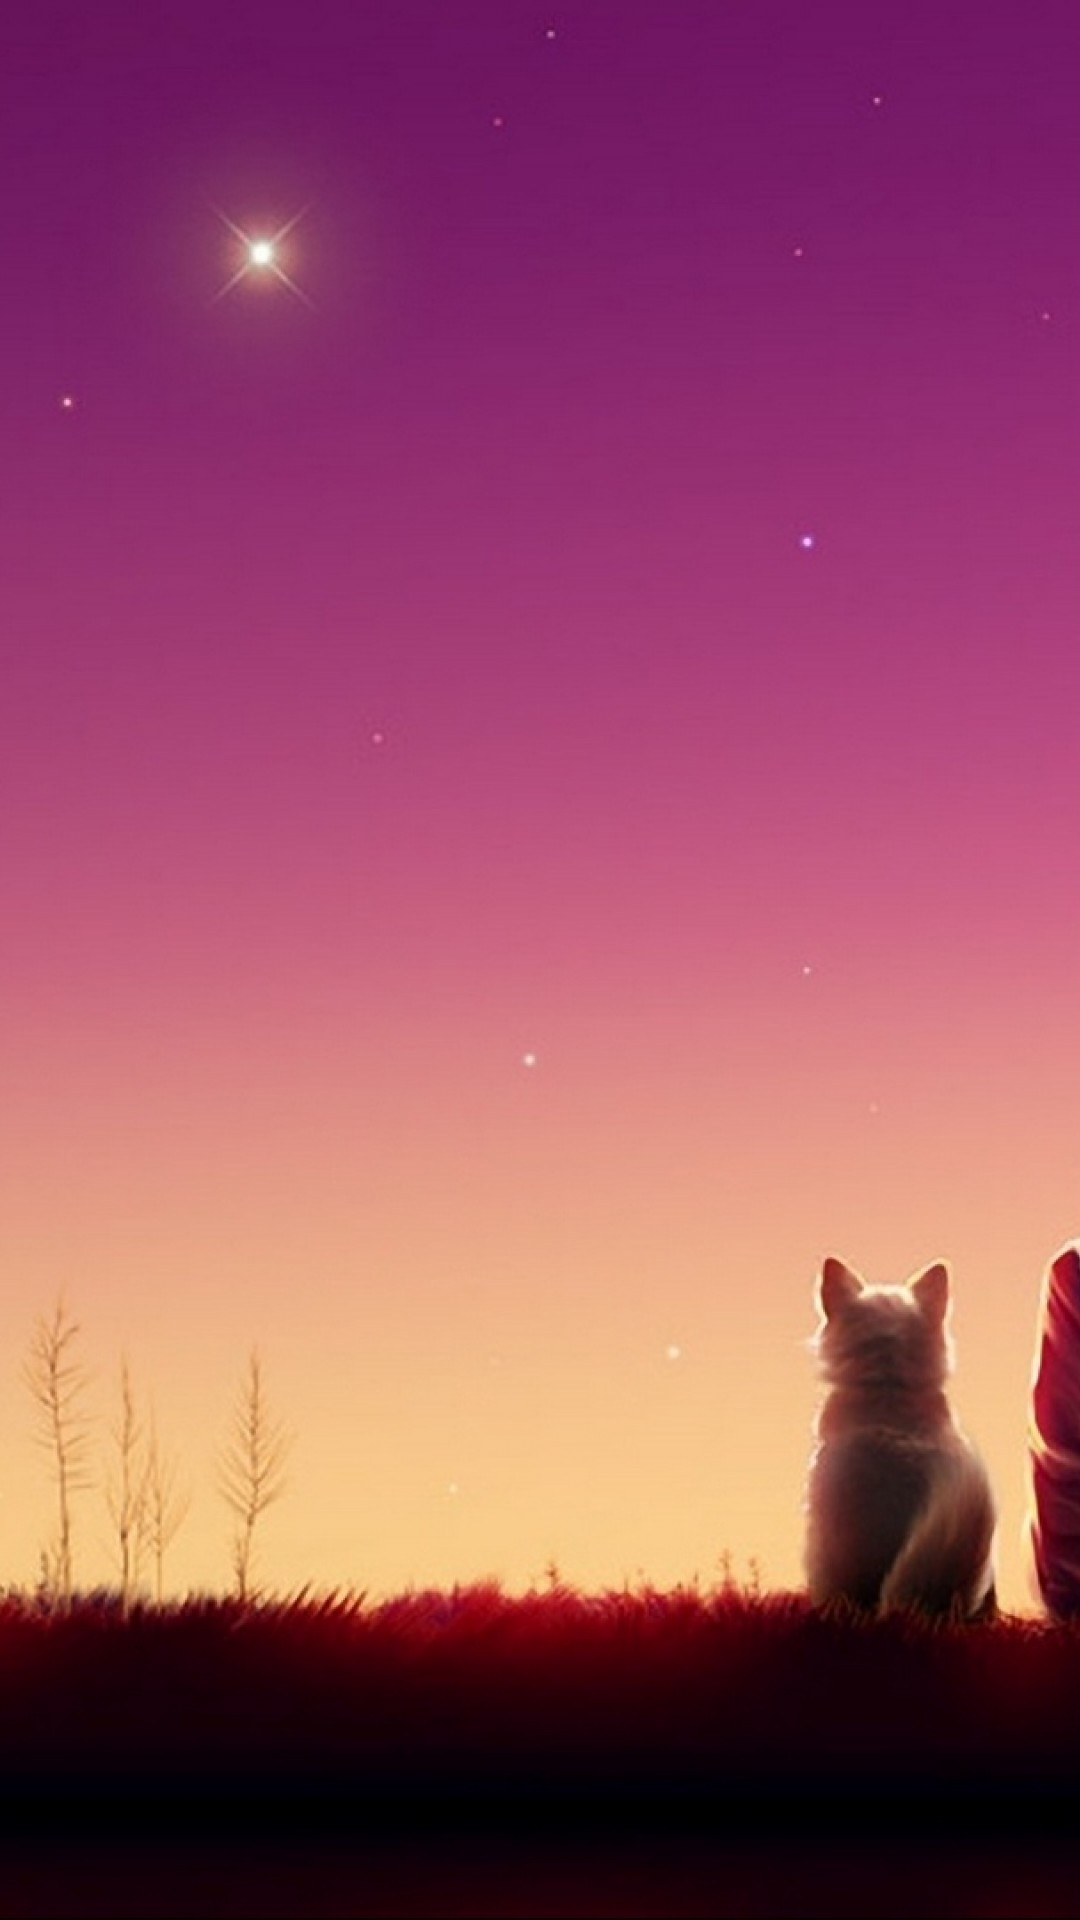 Anime Girl Watches The Sunset With Her Cat Hd Wallpaper Iphone 6